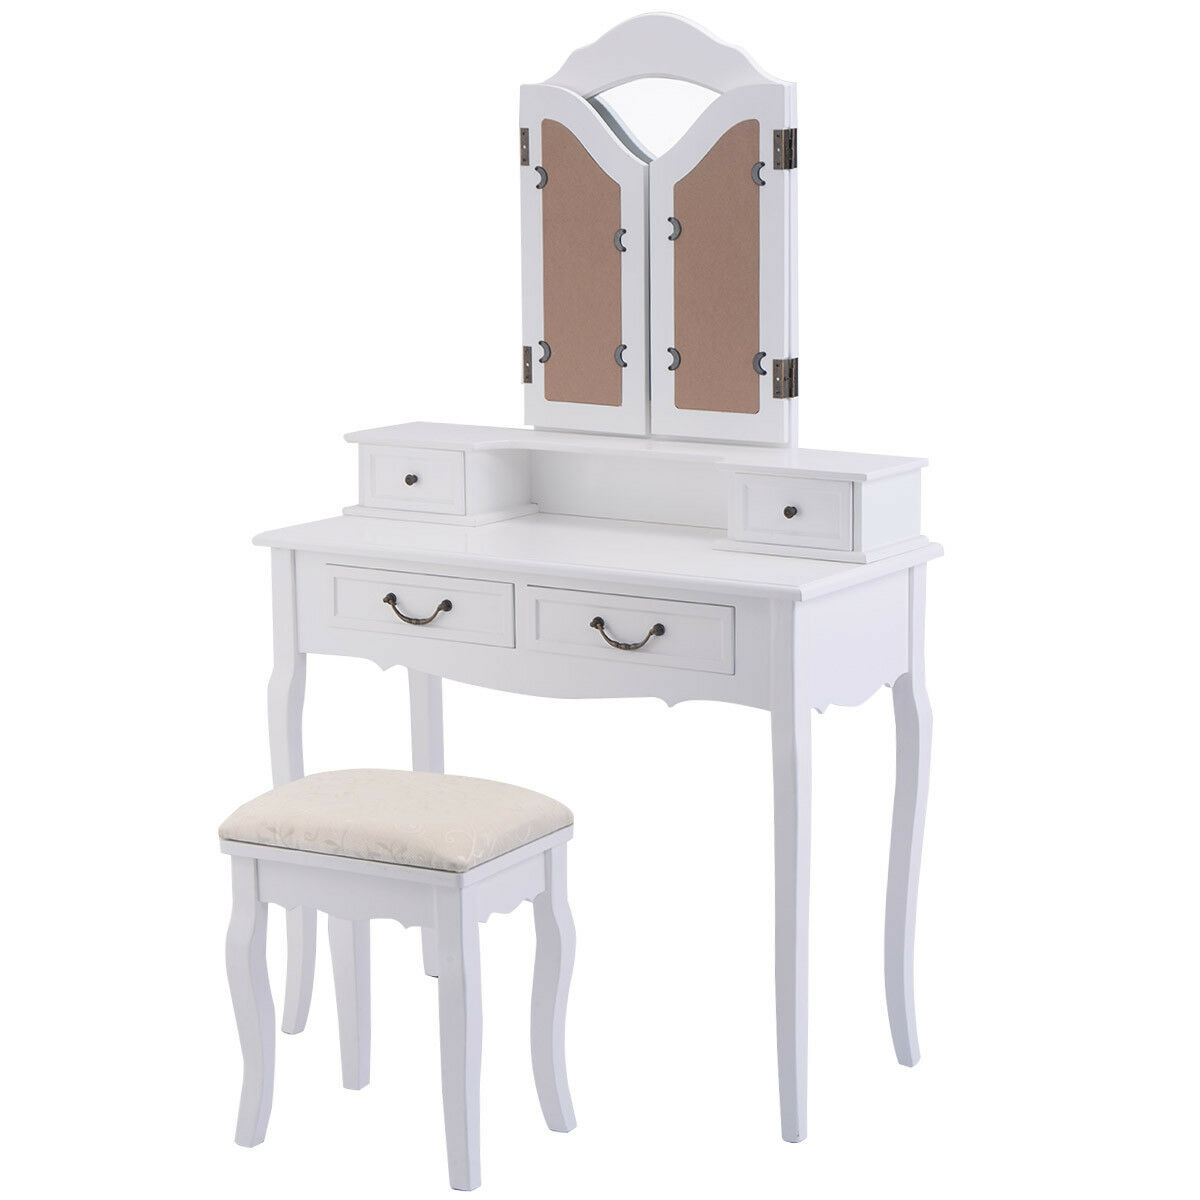 Black / White Vanity Makeup Dressing Table with Tri Folding Mirror + 4 Drawers